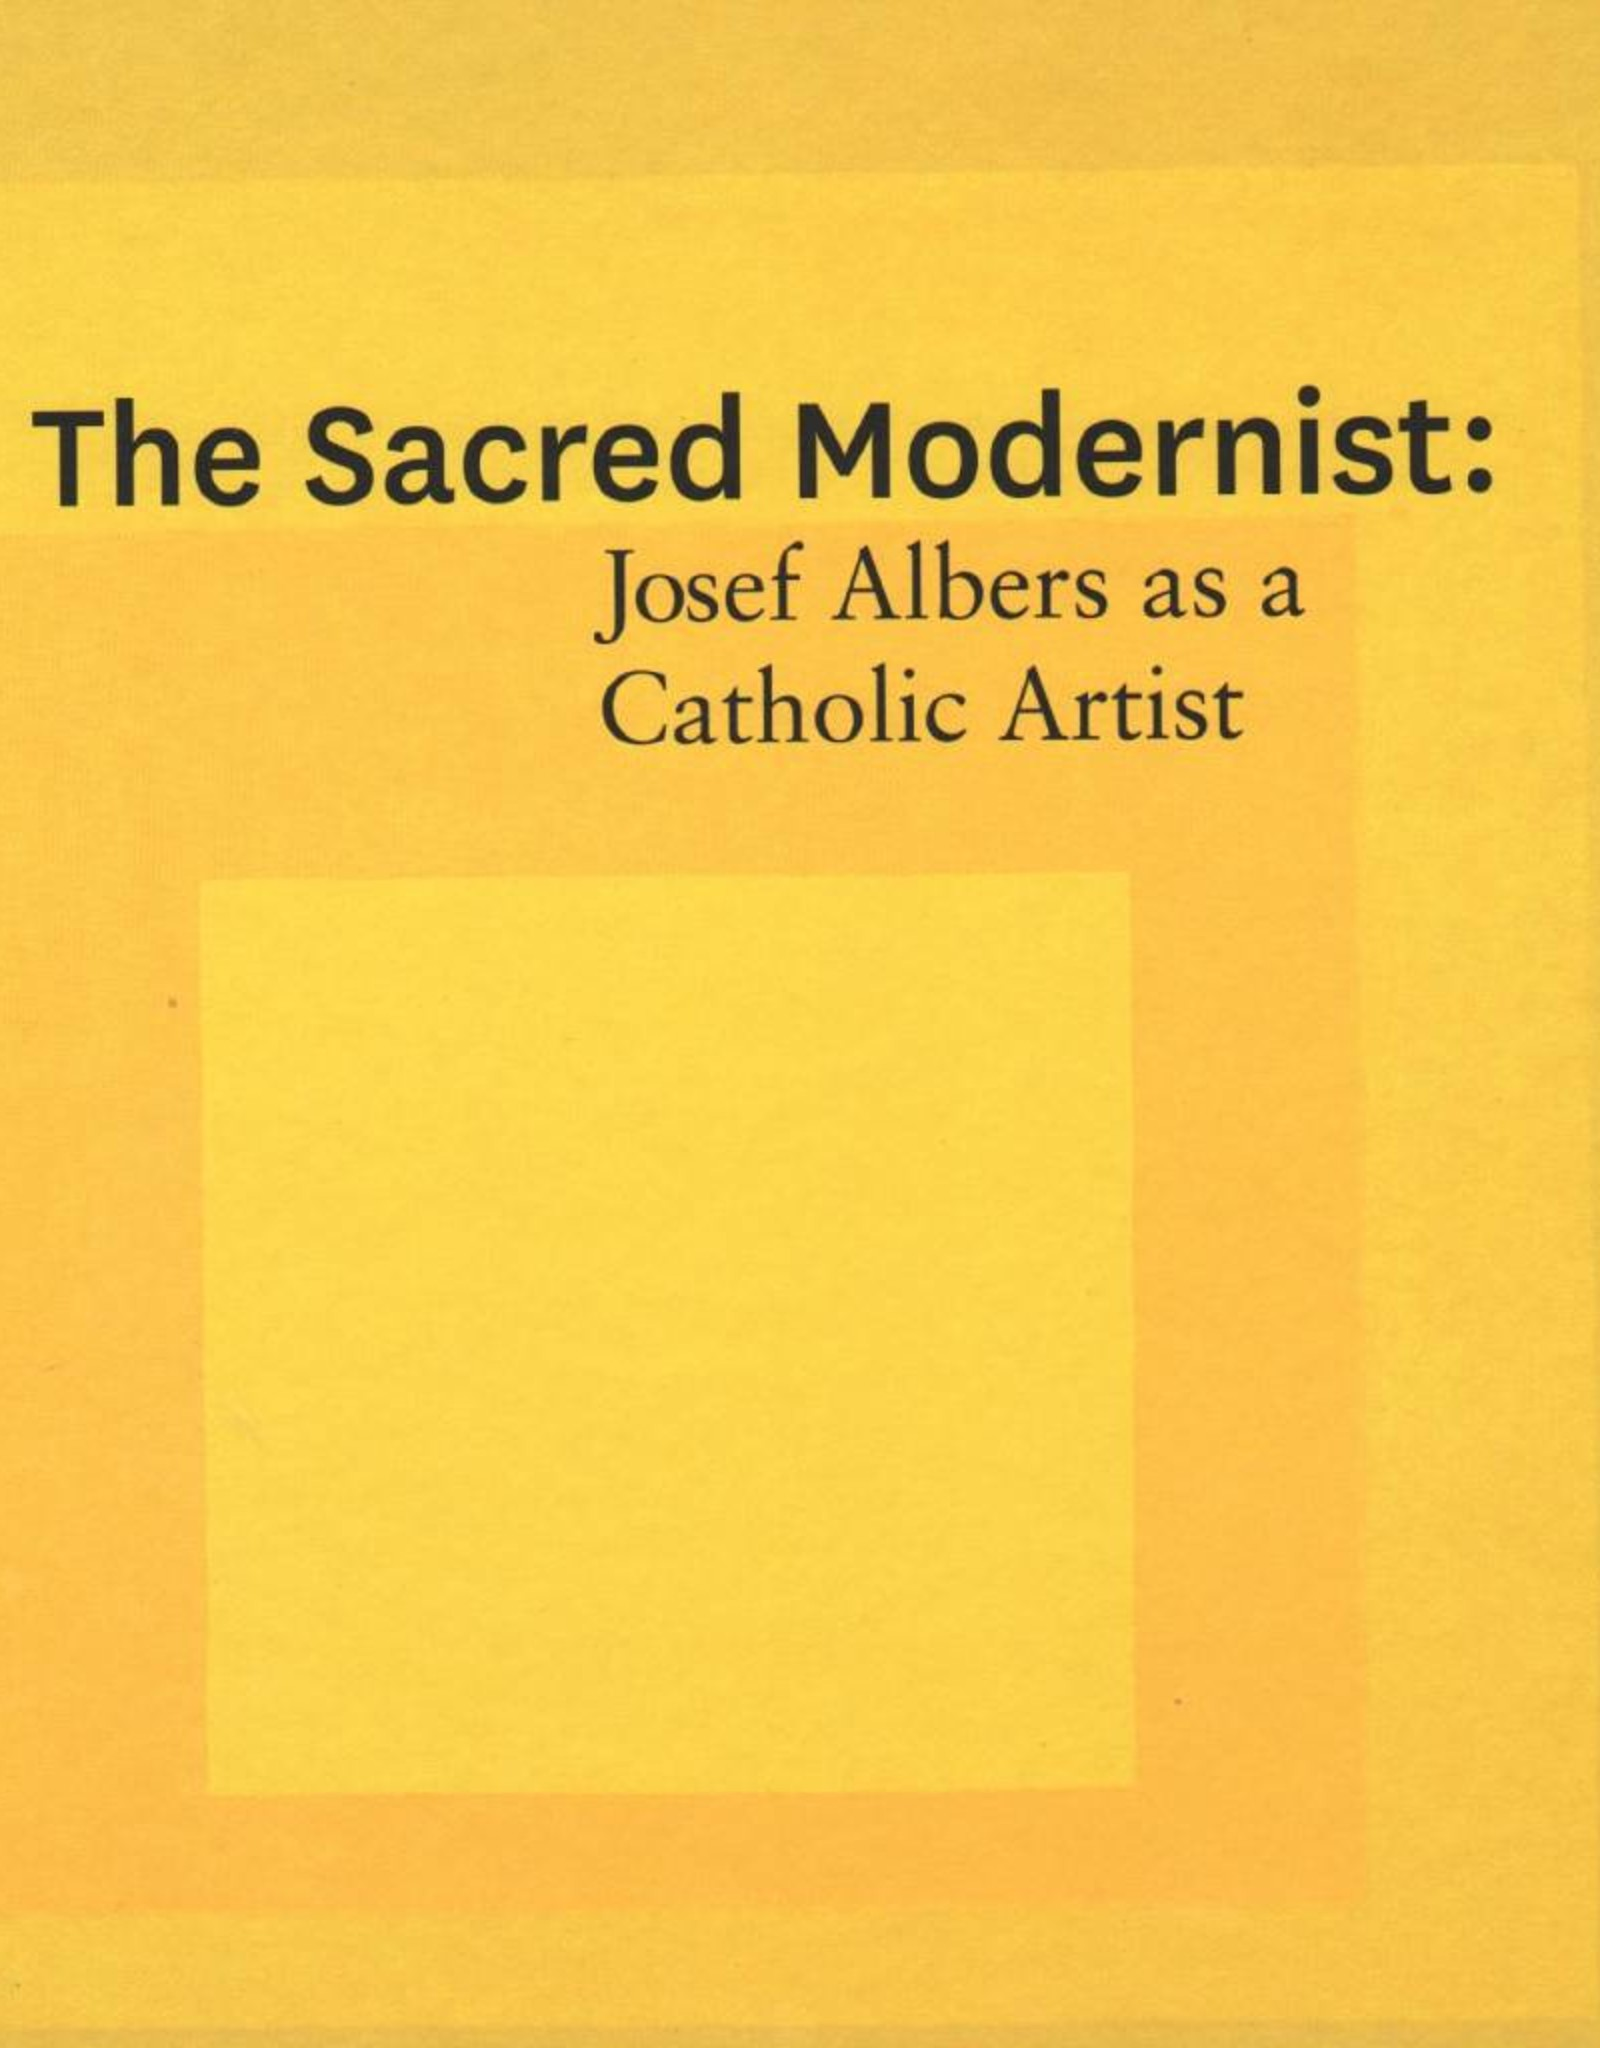 The Glucksman The Sacred Modernist: Josef Albers as a Catholic Artist (Large)